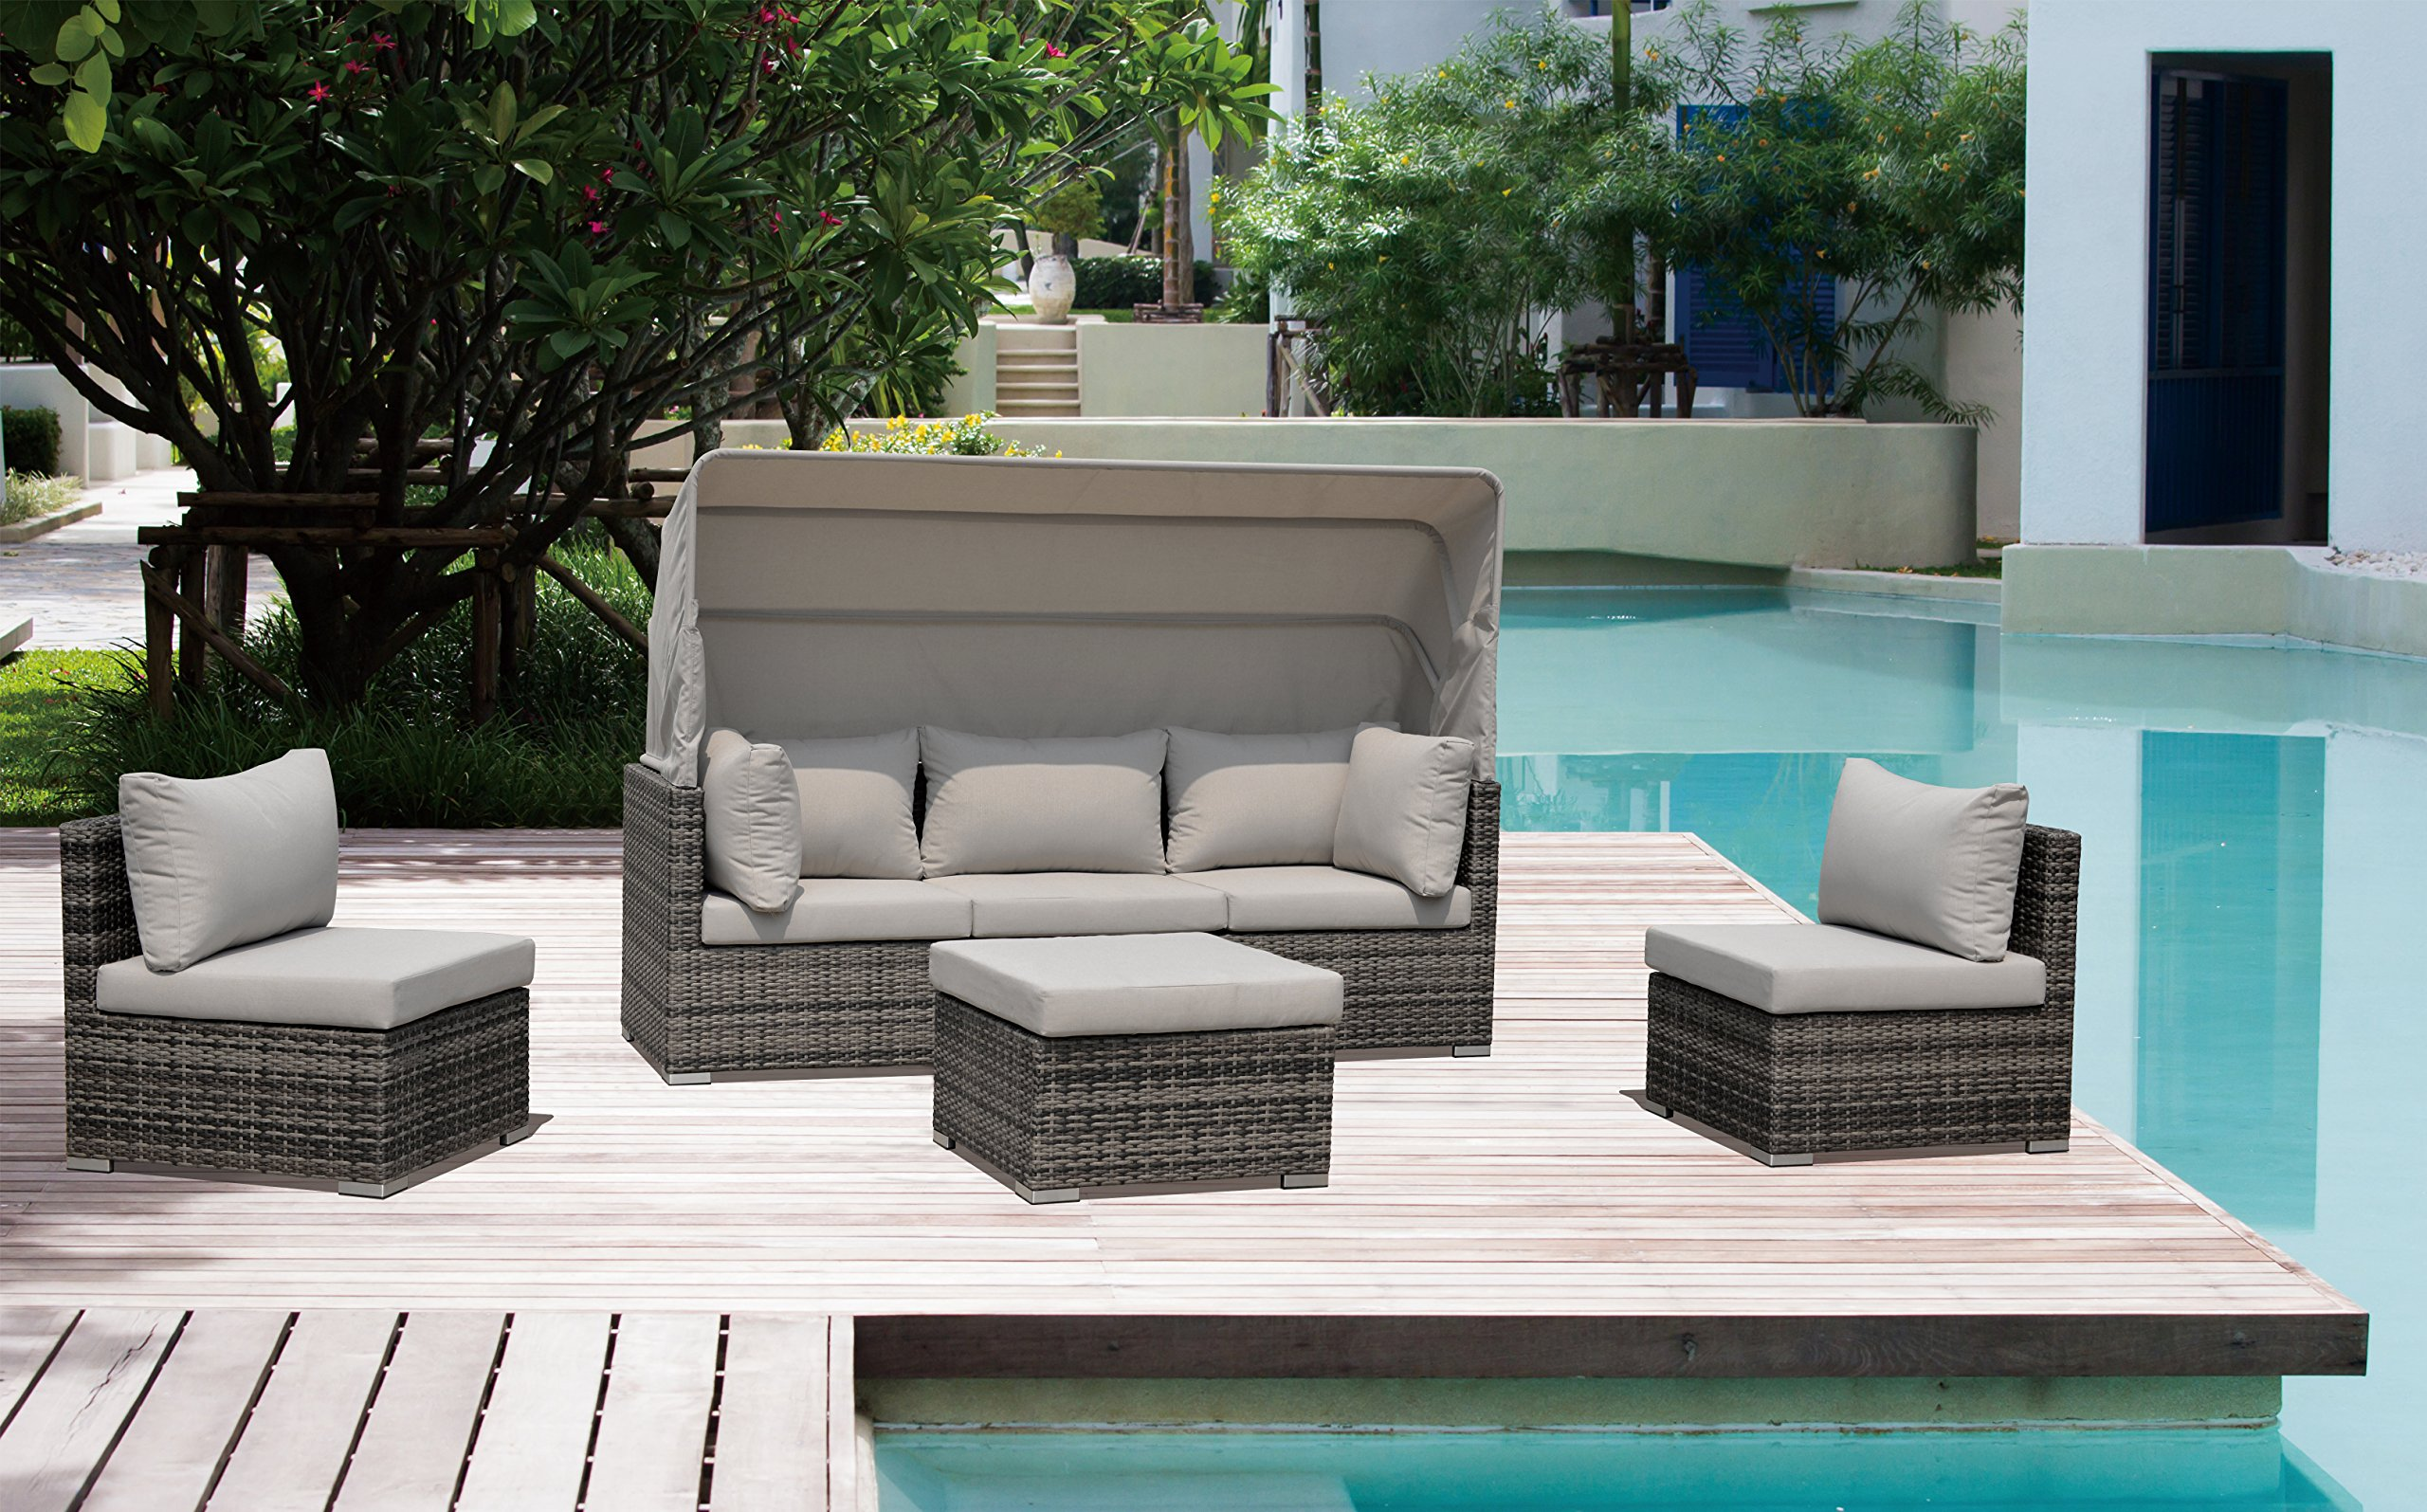 Courtyard Casual Taupe Aurora Outdoor Sectional to Daybed Combo with Canopy by Courtyard Casual